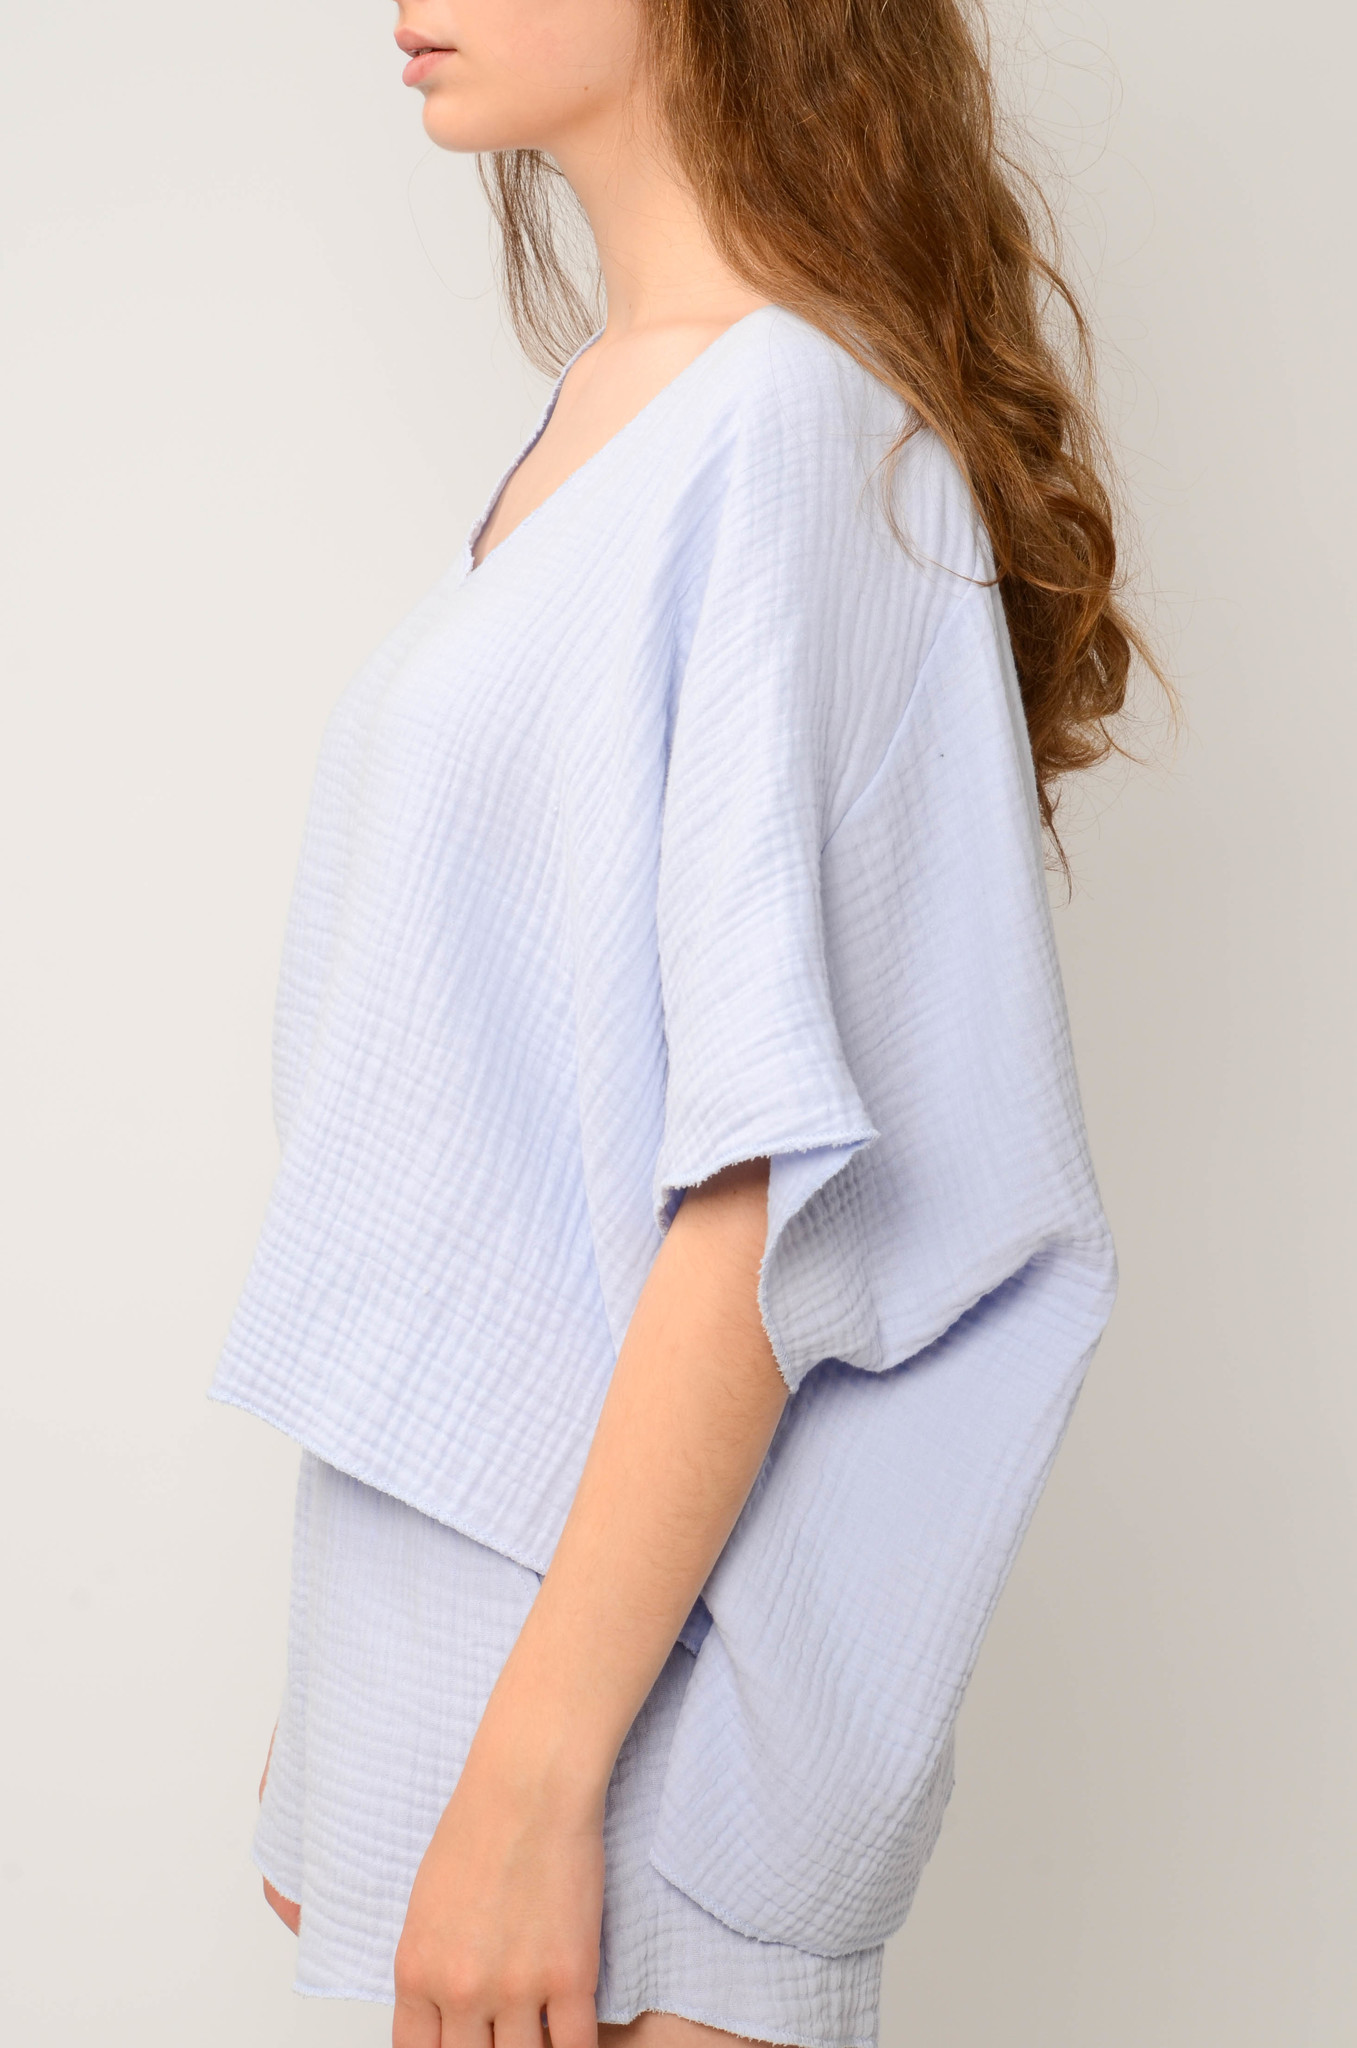 DATAI TOP IN ICE BLUE-3